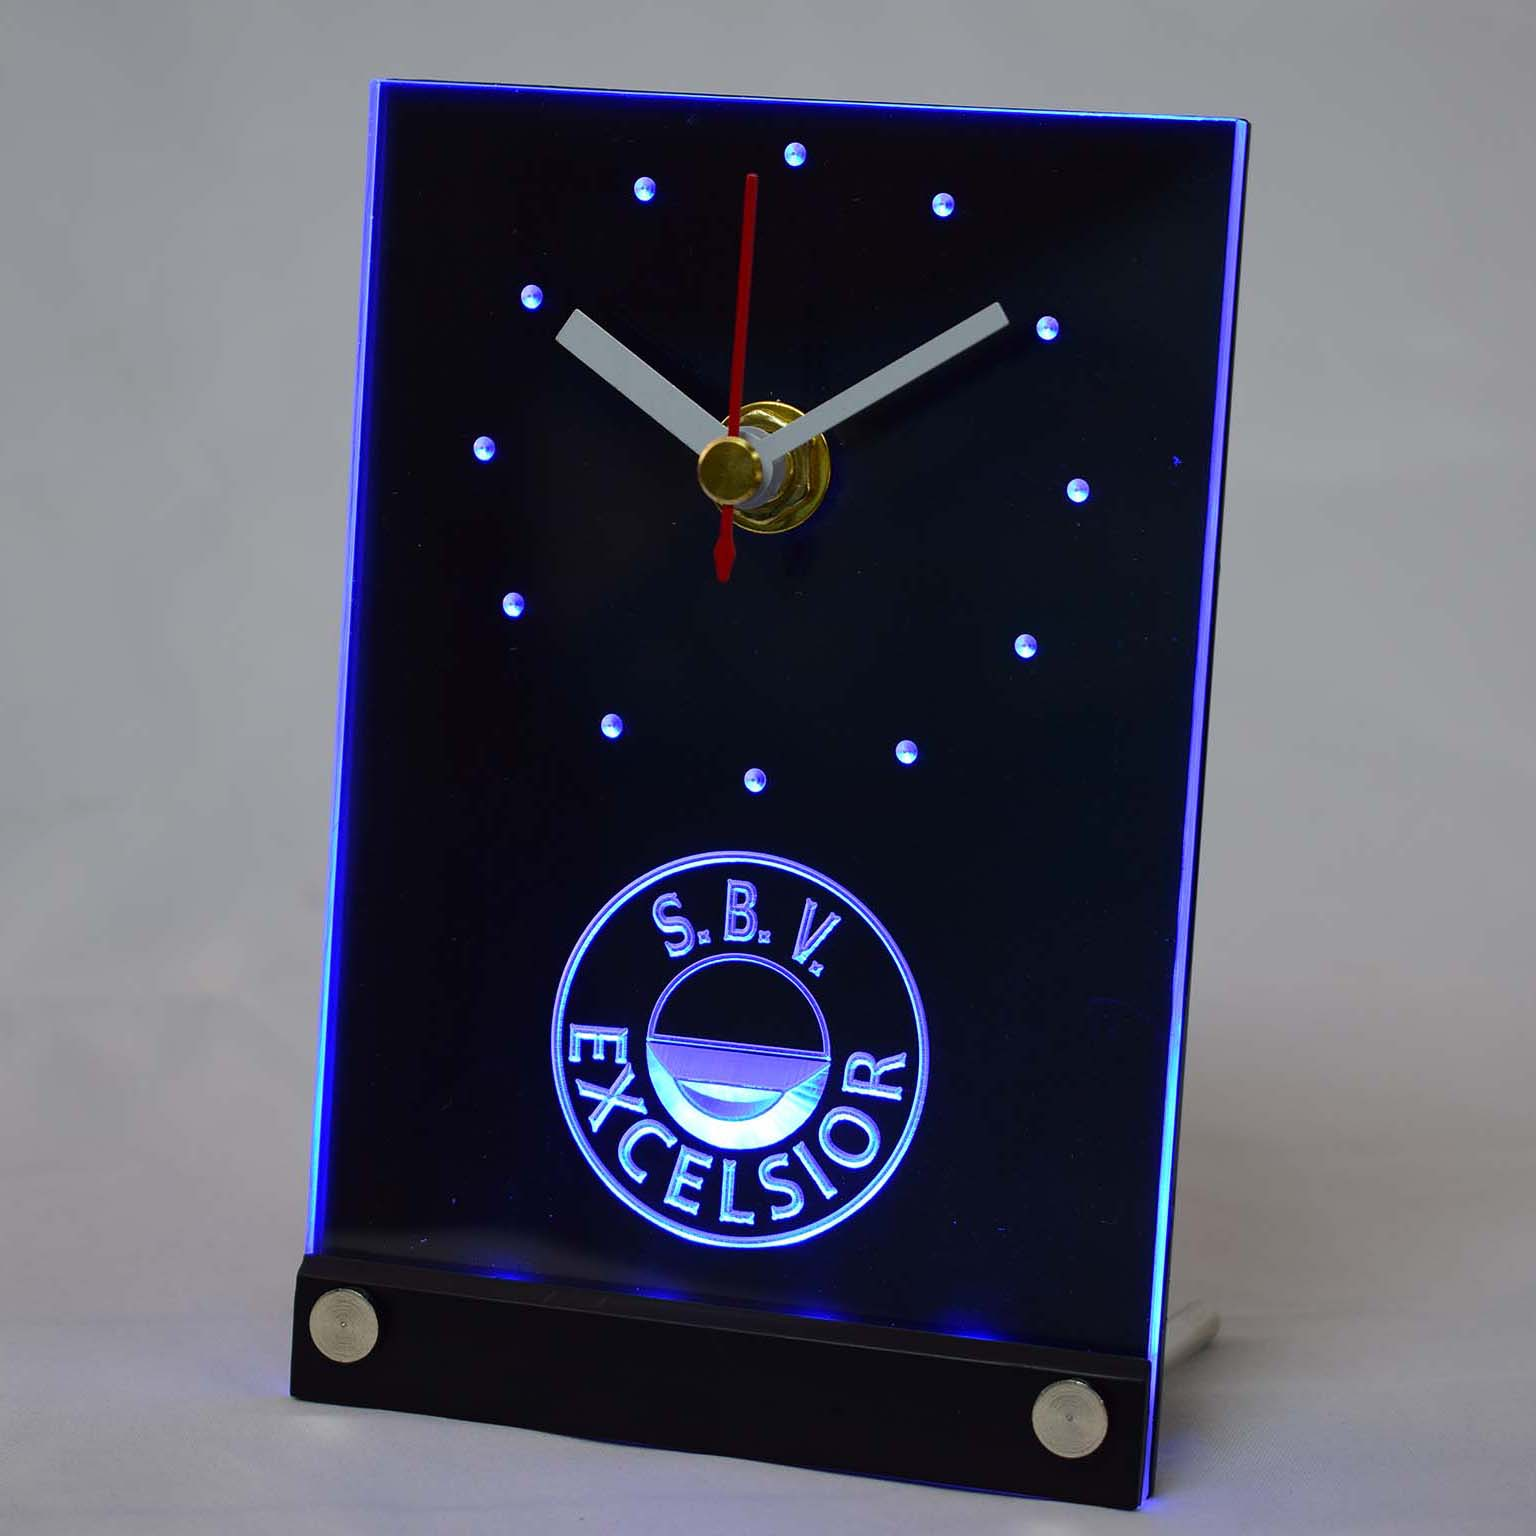 tnc1022 S.B.V. Excelsior Dutch Eredivisie Football 3D LED Table Desk Clock